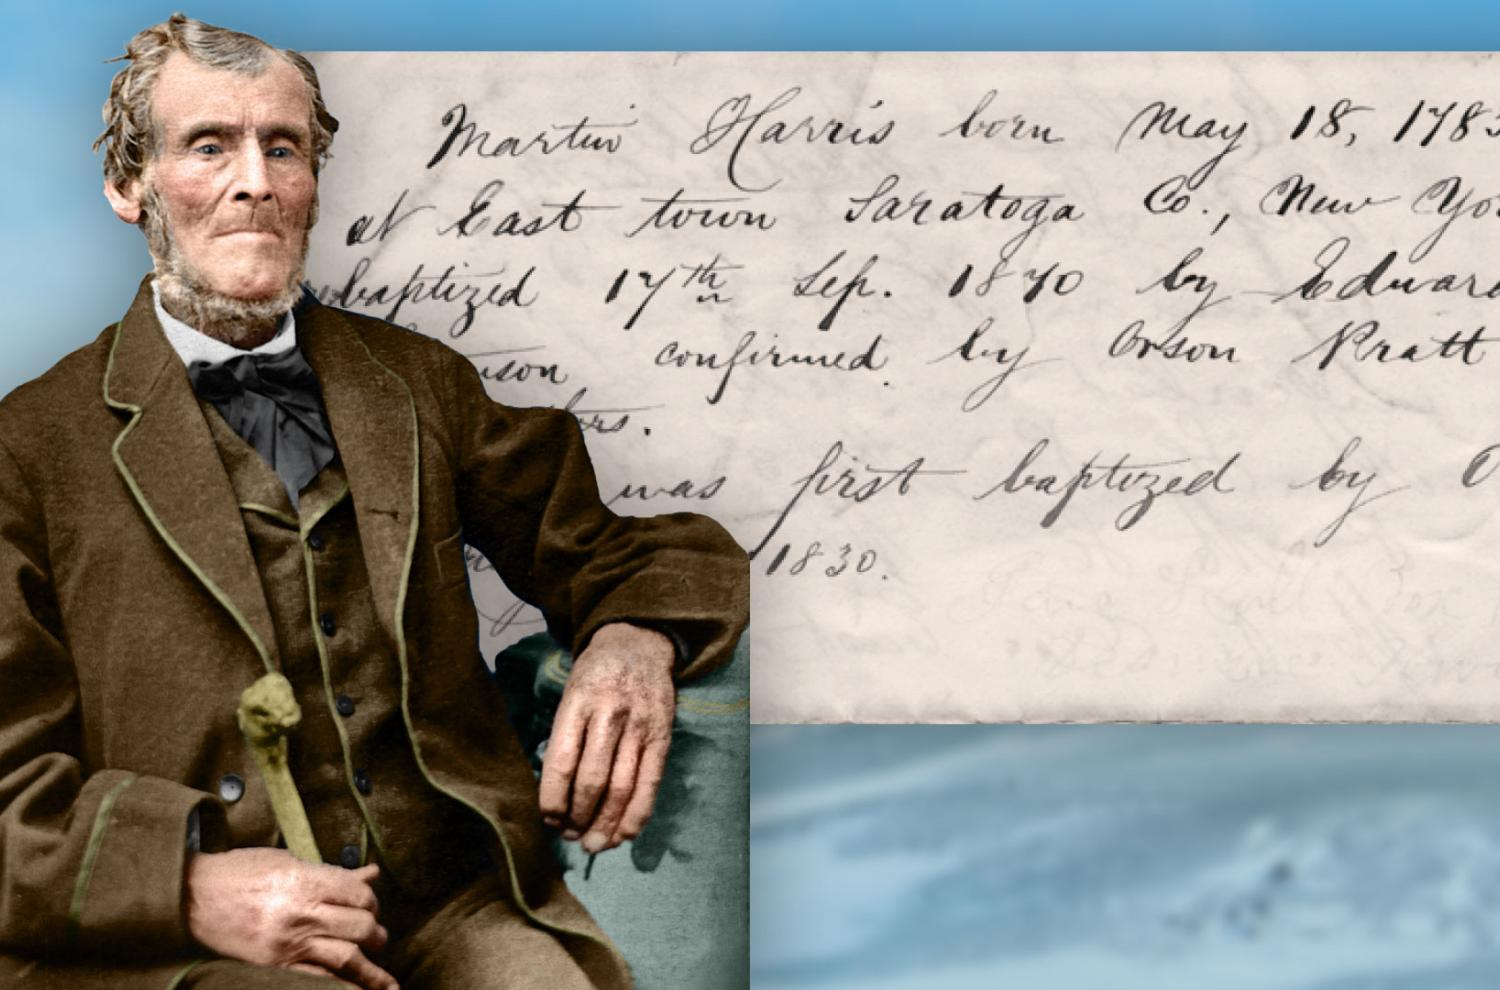 Portrait of Martin Harris colorized by Bryce M. Haymond. Martin Harris's baptism certificate courtesy of Trace Mayer.